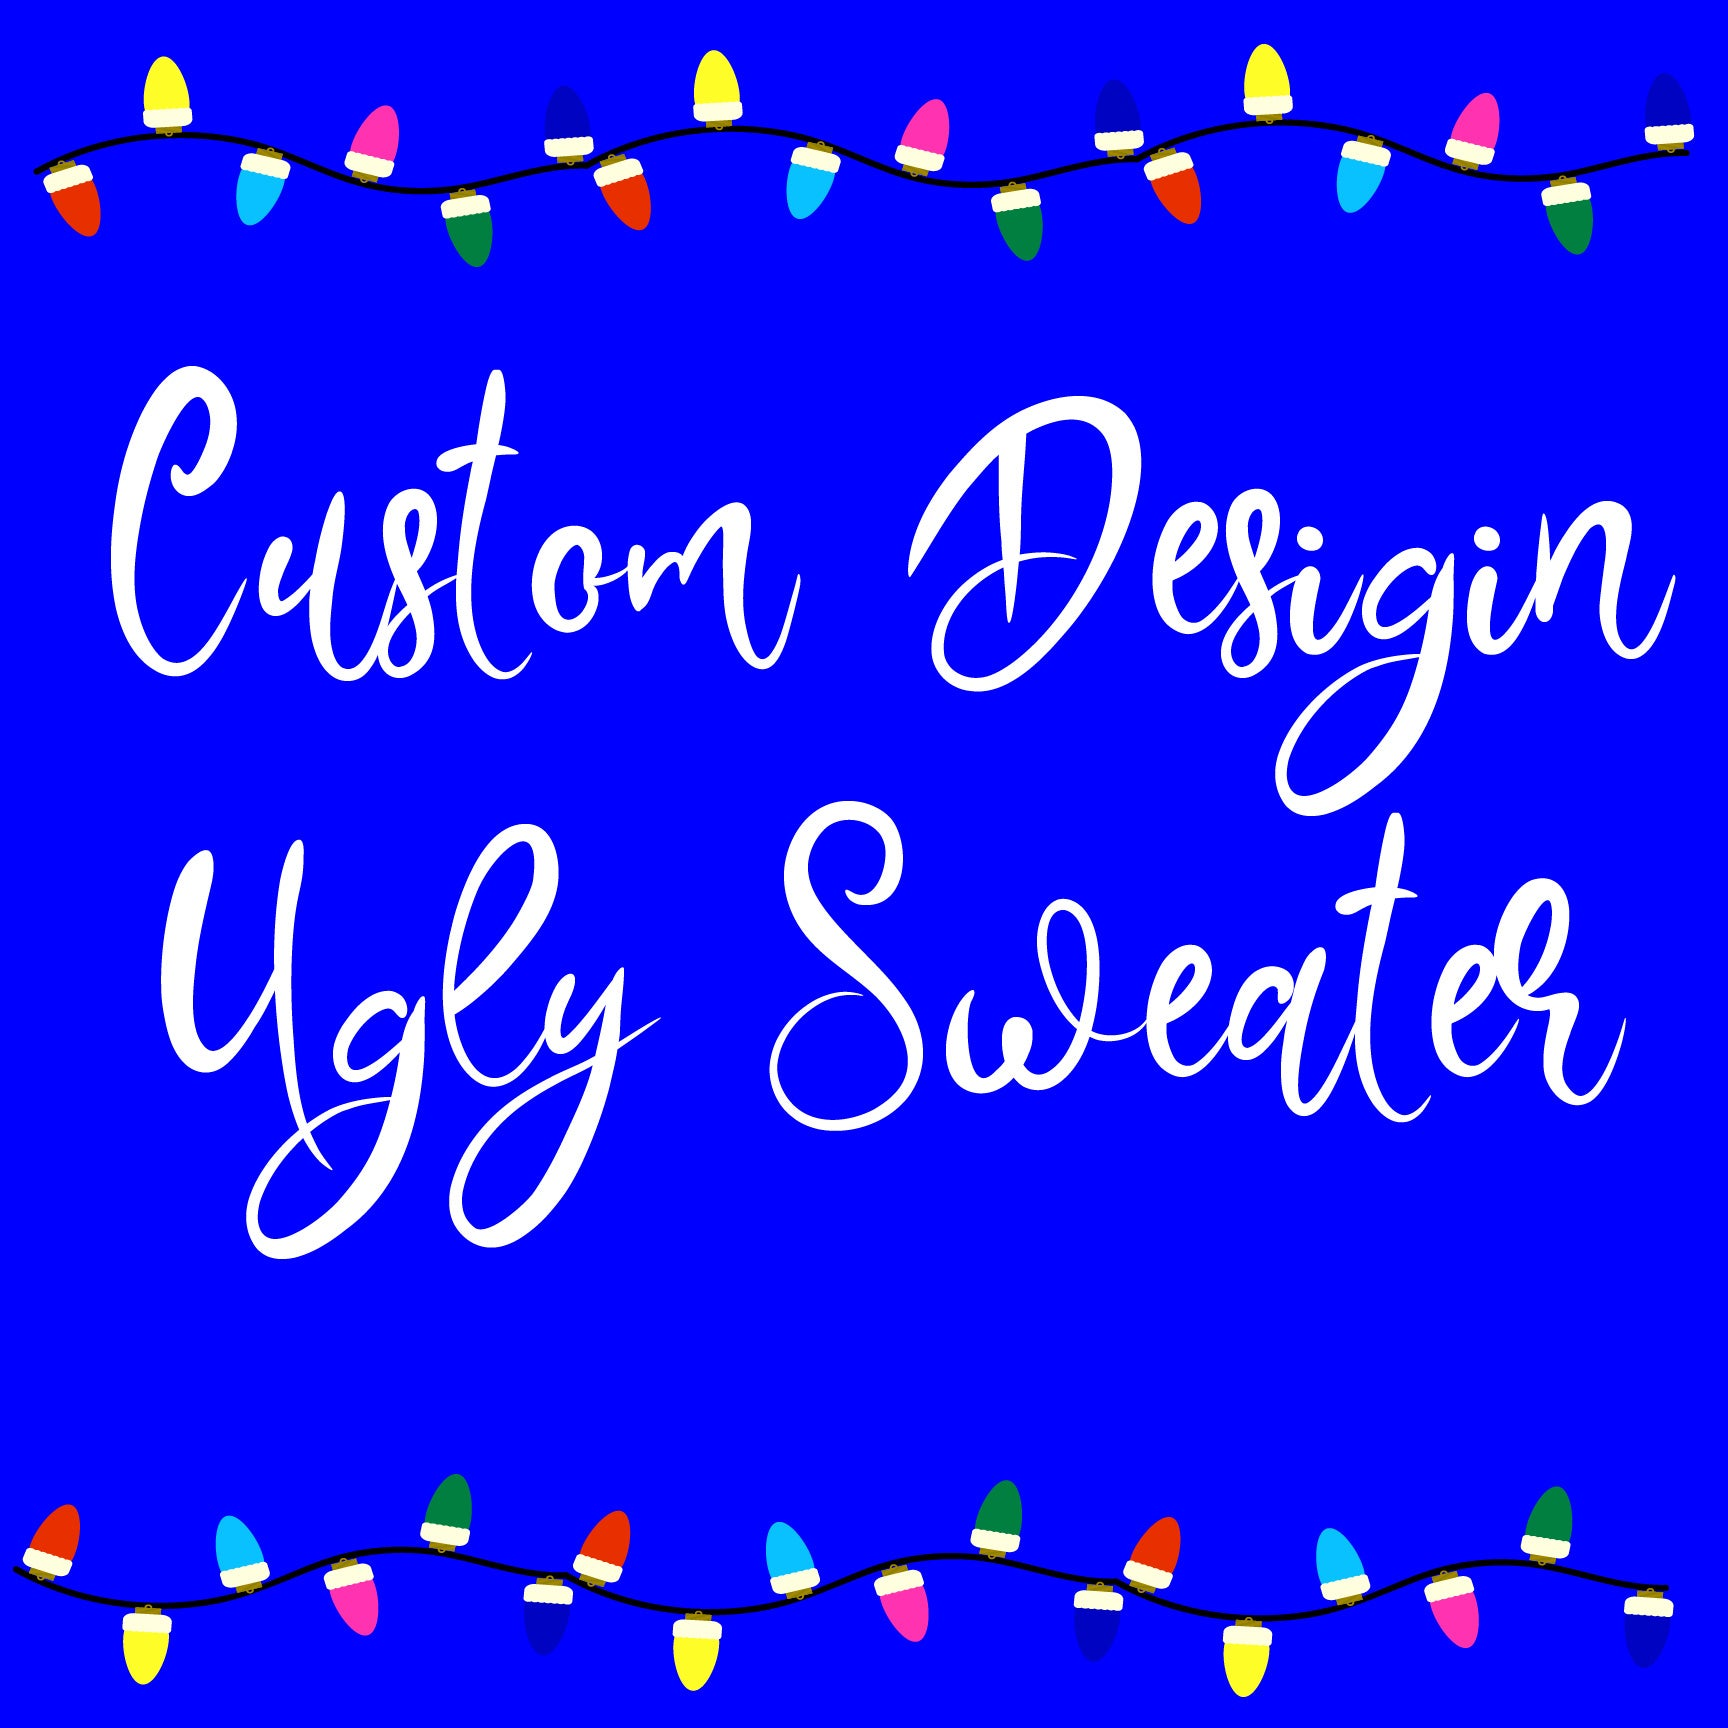 Ugly Sweater Christmas design